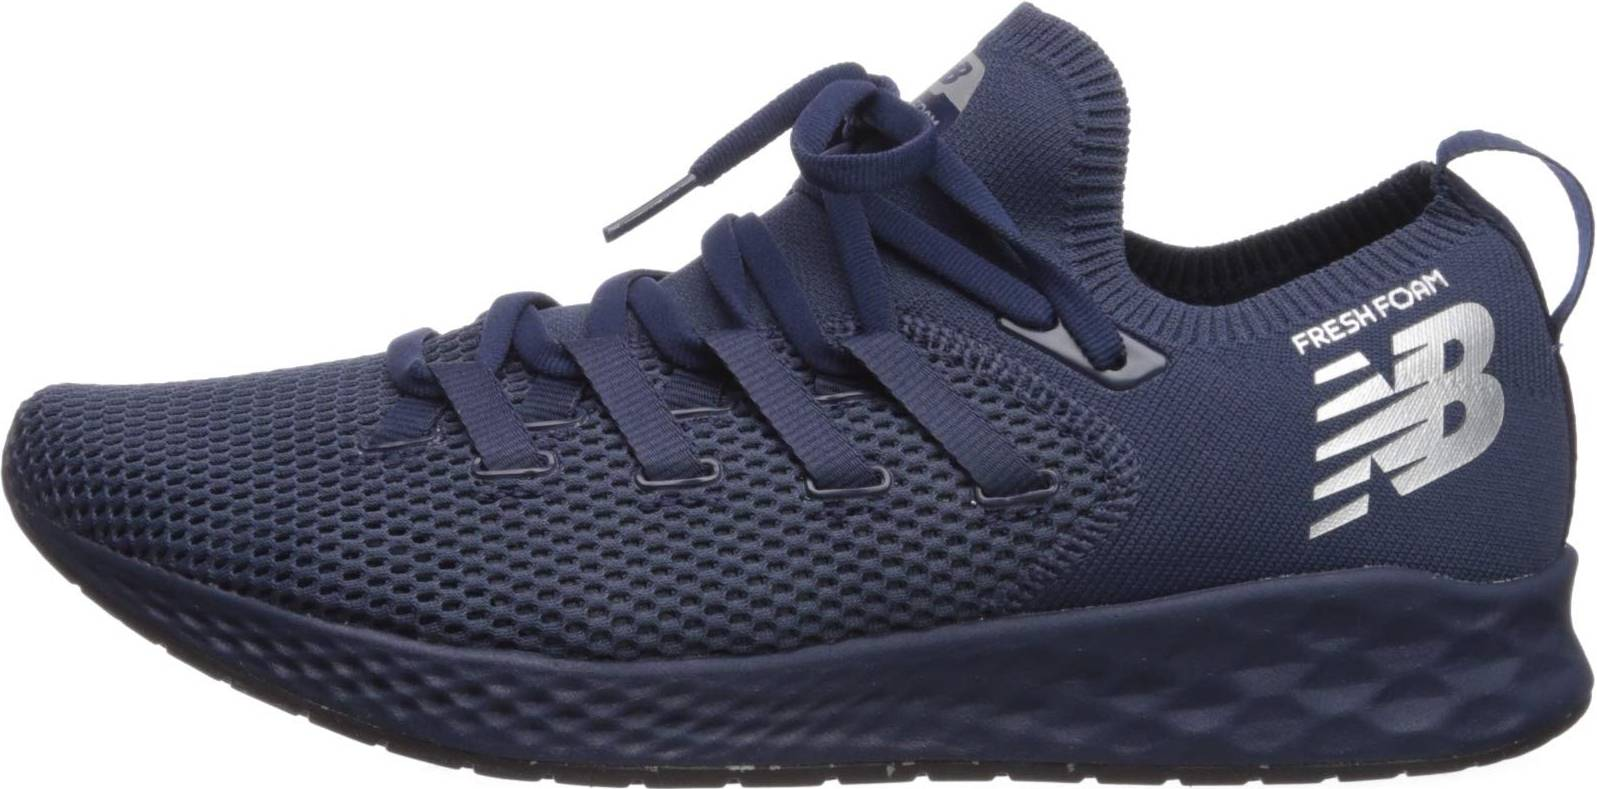 Save 49% on Wide Training Shoes (40